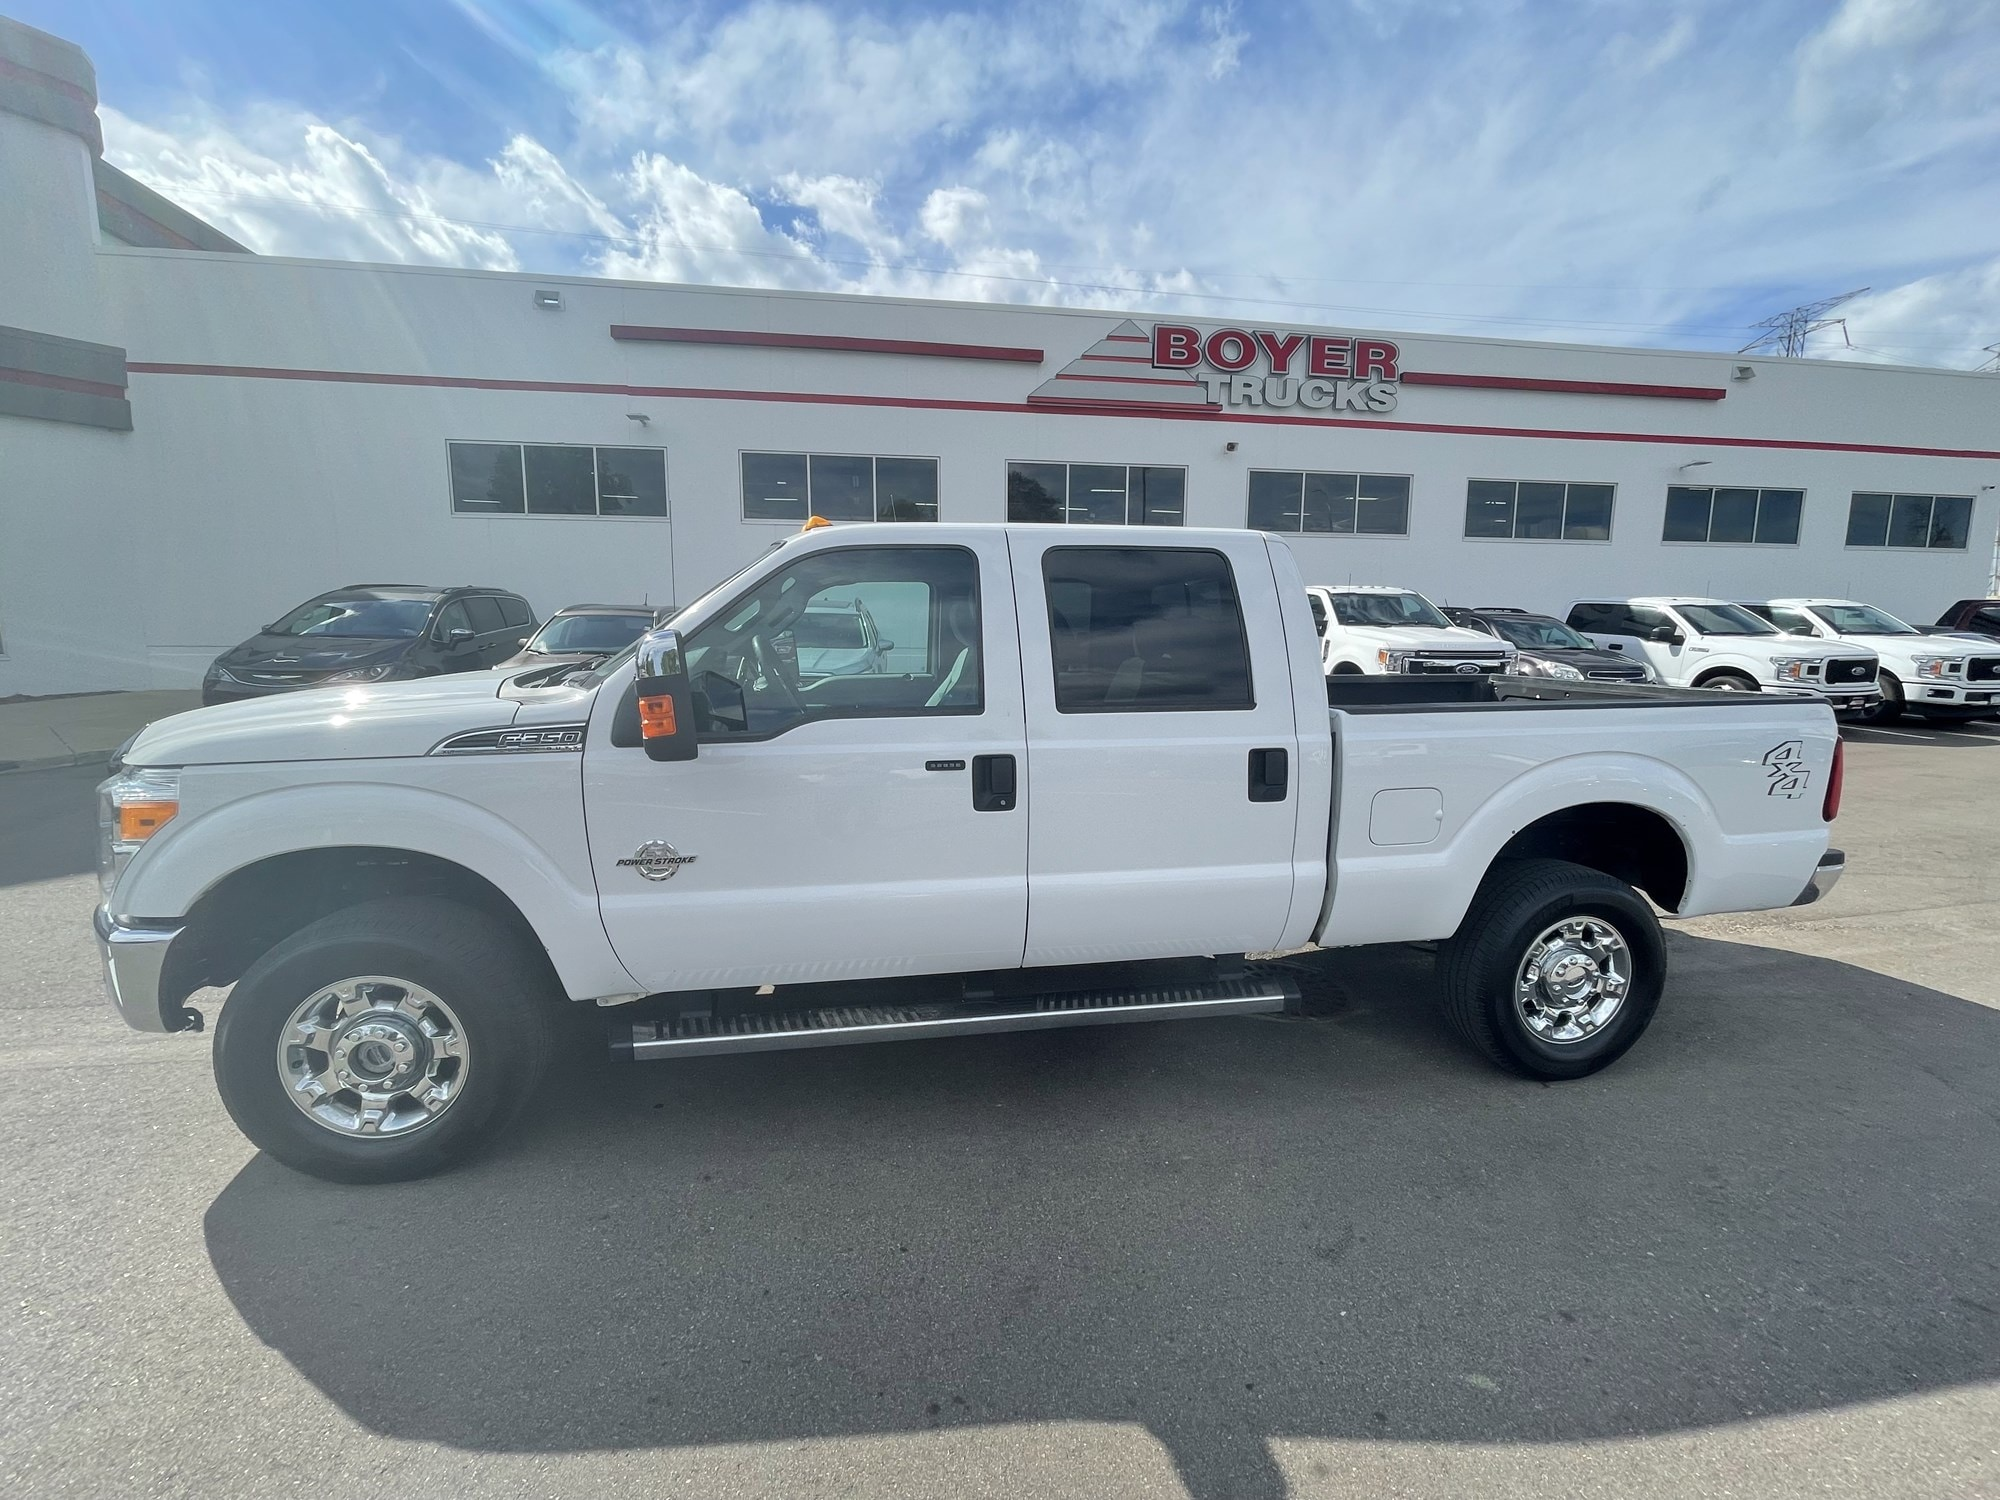 Used 2015 Ford F-350 Super Duty XLT with VIN 1FT8W3BT7FEB55991 for sale in Minneapolis, Minnesota